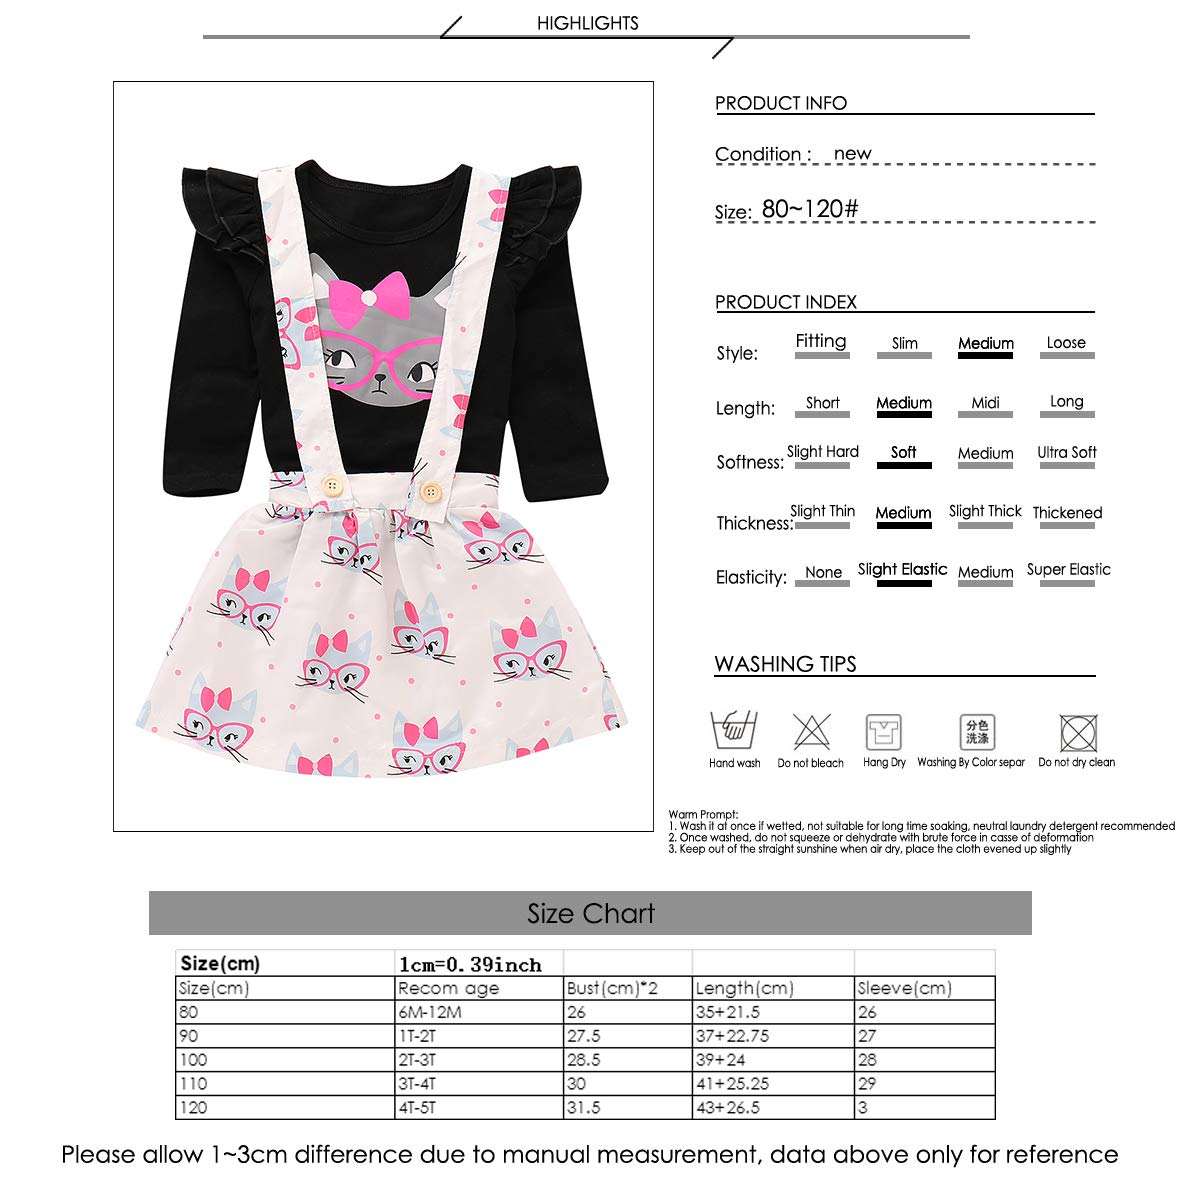 27706803405b Amazon.com: Toddler Baby Girls Cut Cat Ruffle Long Sleeve Shirt Tops  Suspender Skirt Overalls Outfits: Clothing